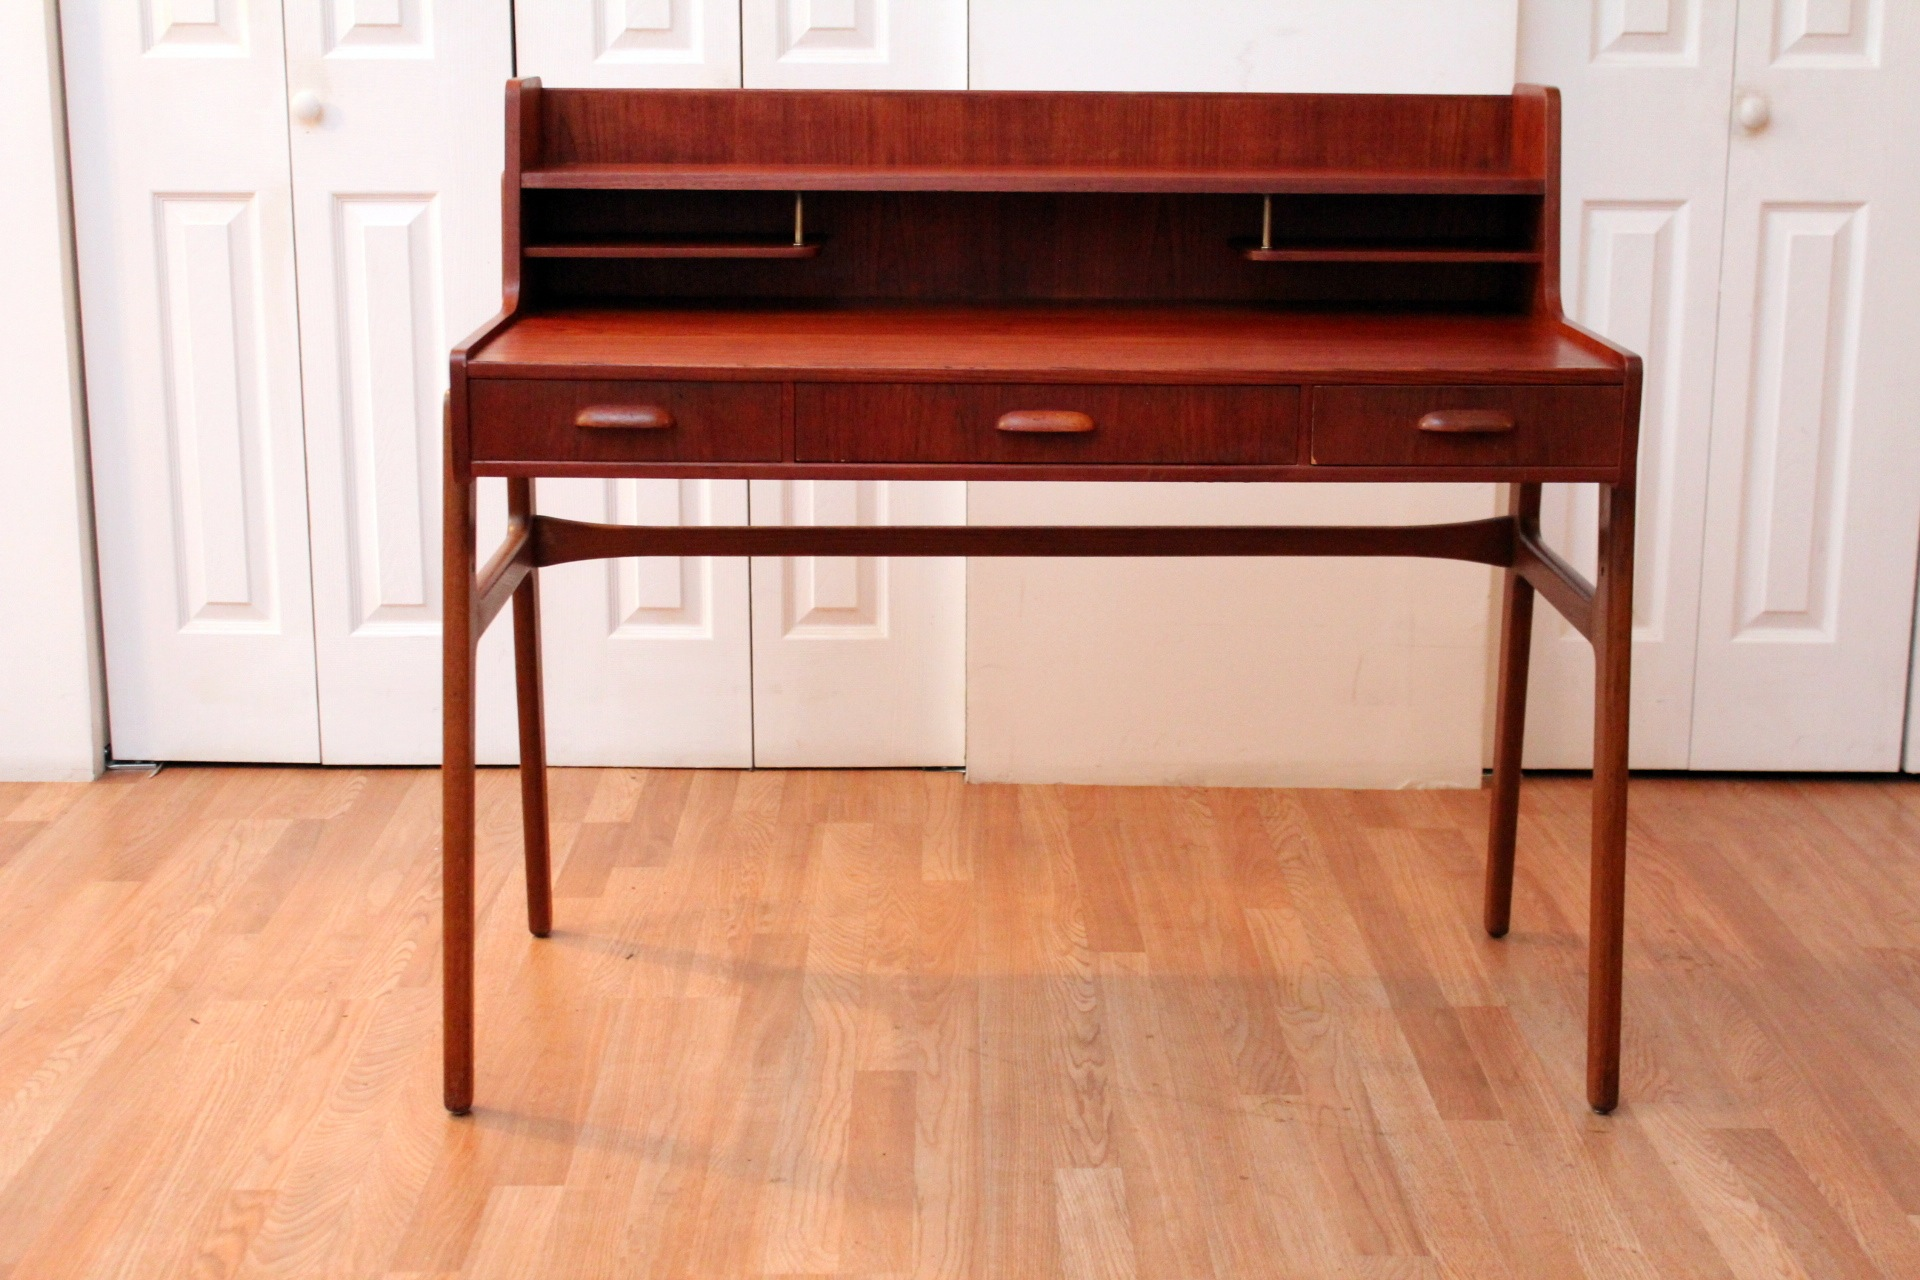 deens danish product vintage directional desk bureau floating design writing century large nl mid